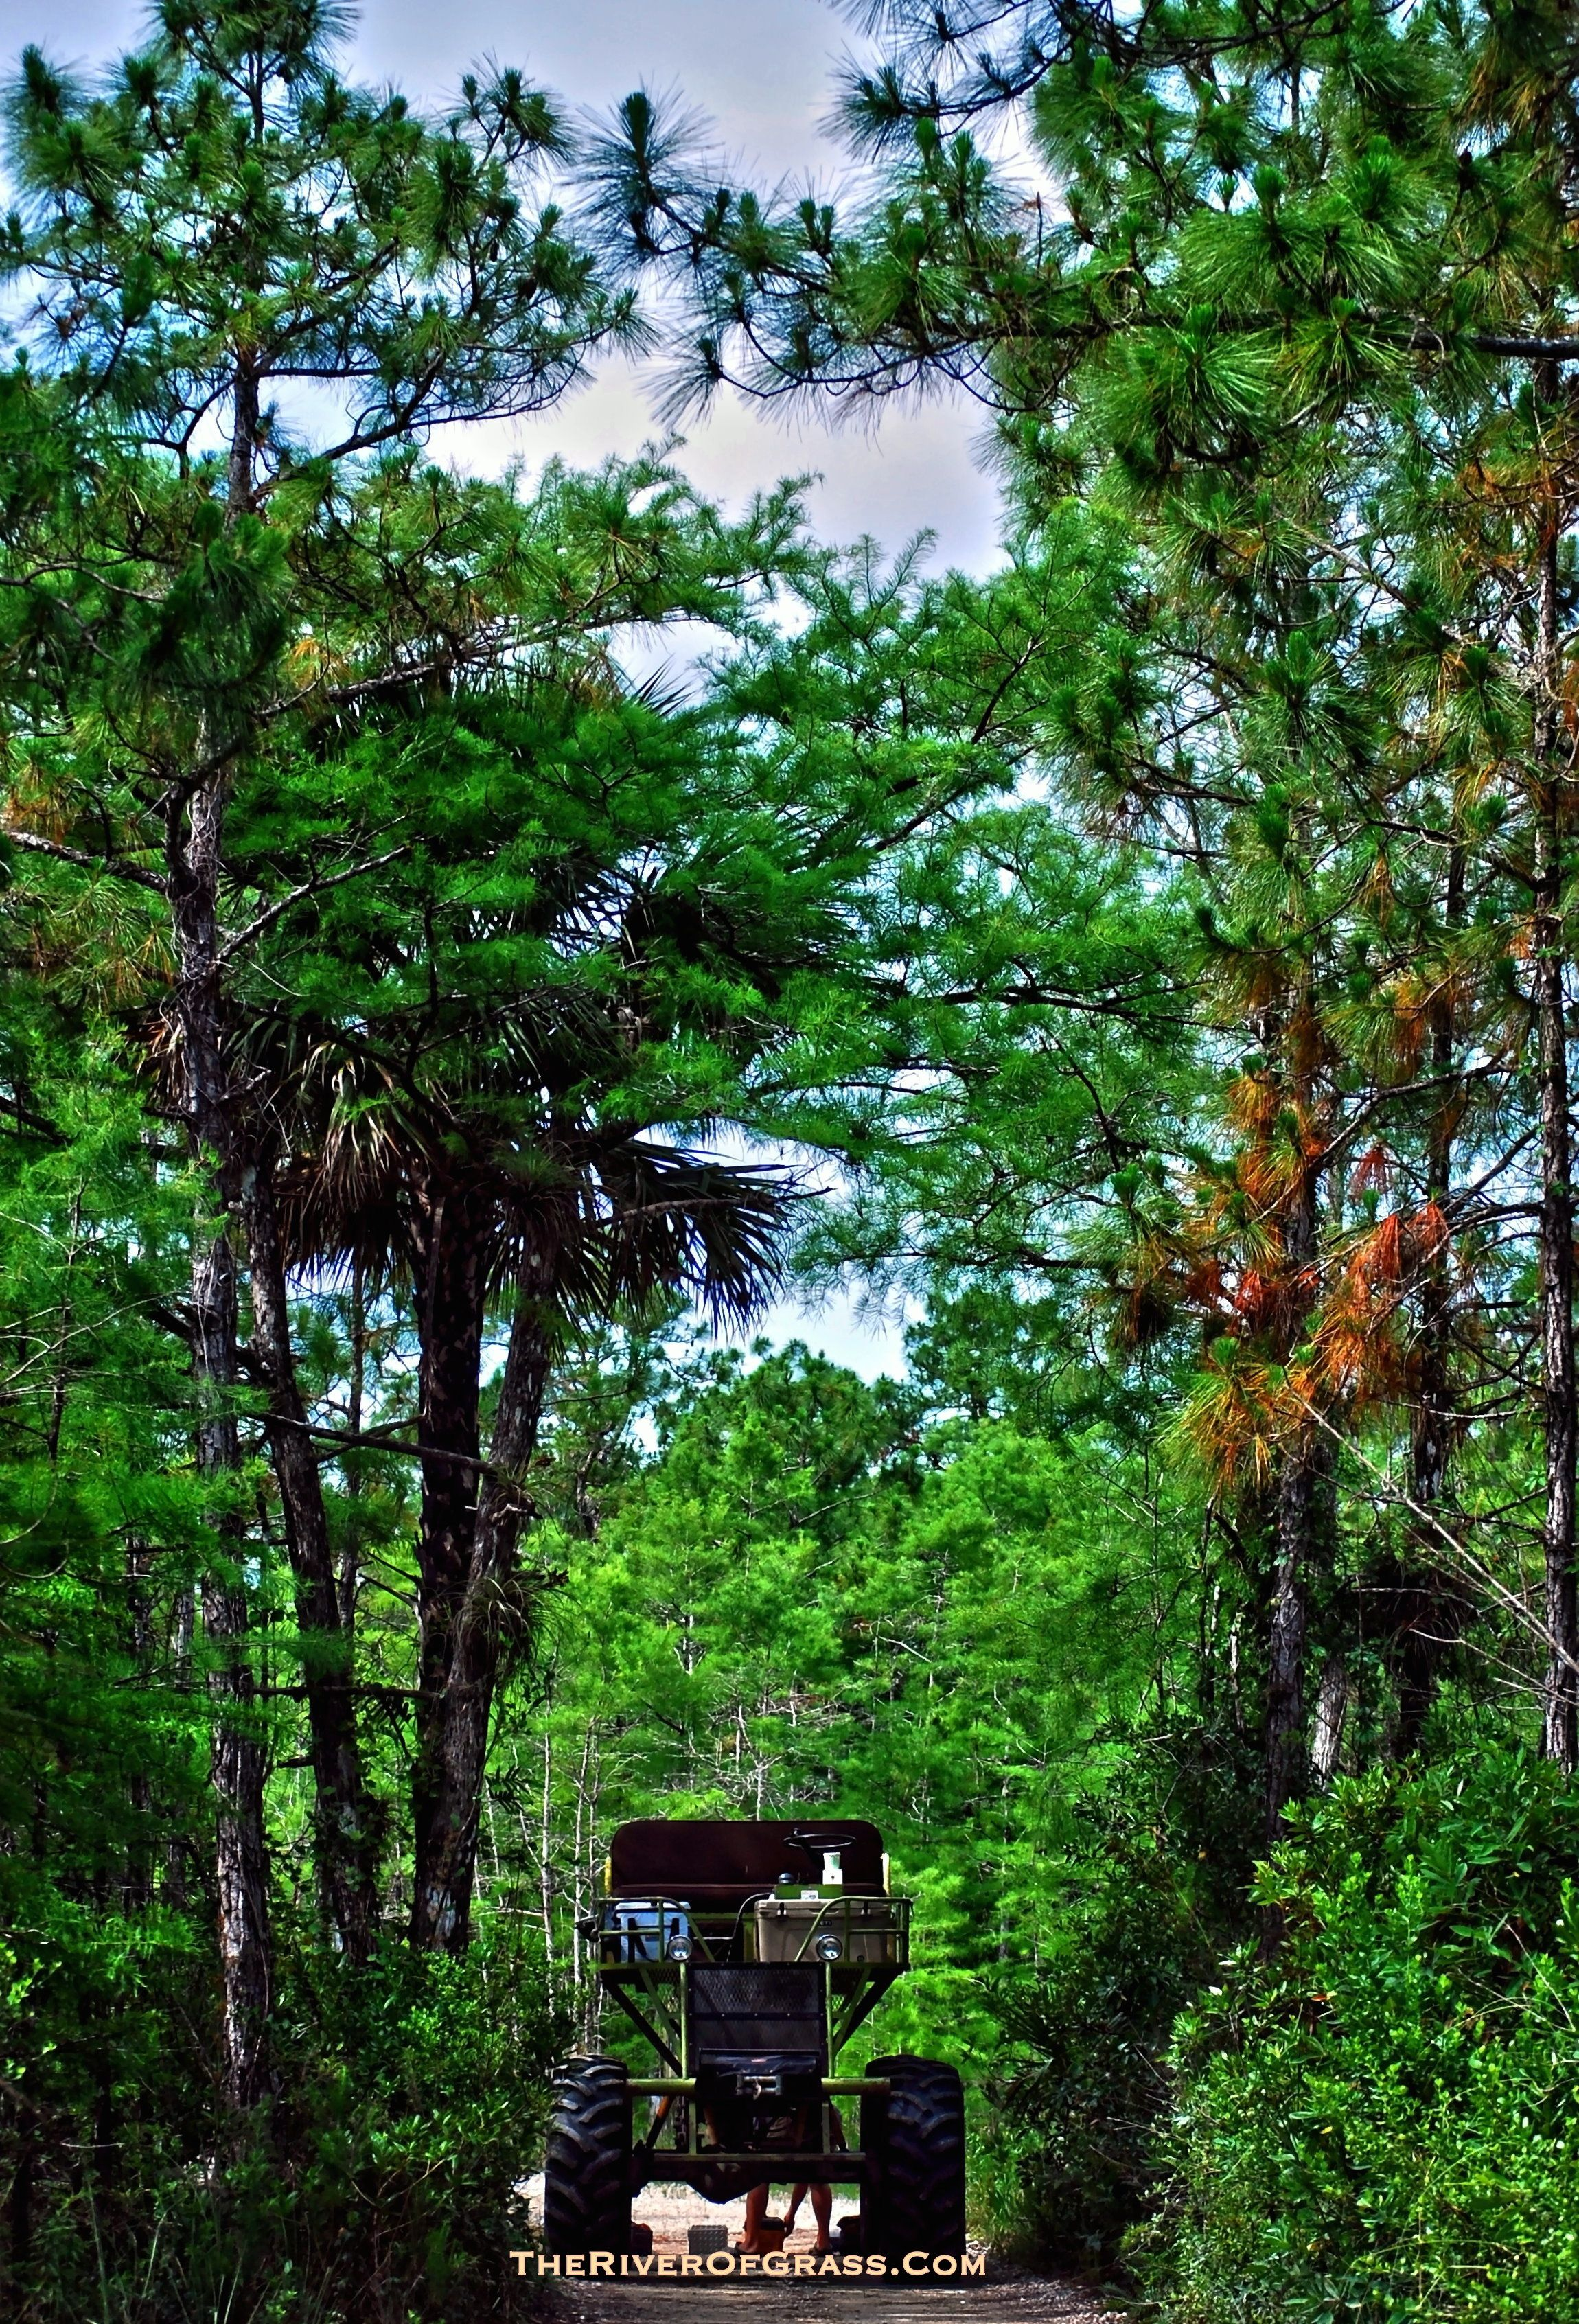 Swamp Buggy Tours in the Everglades Big Cypress National